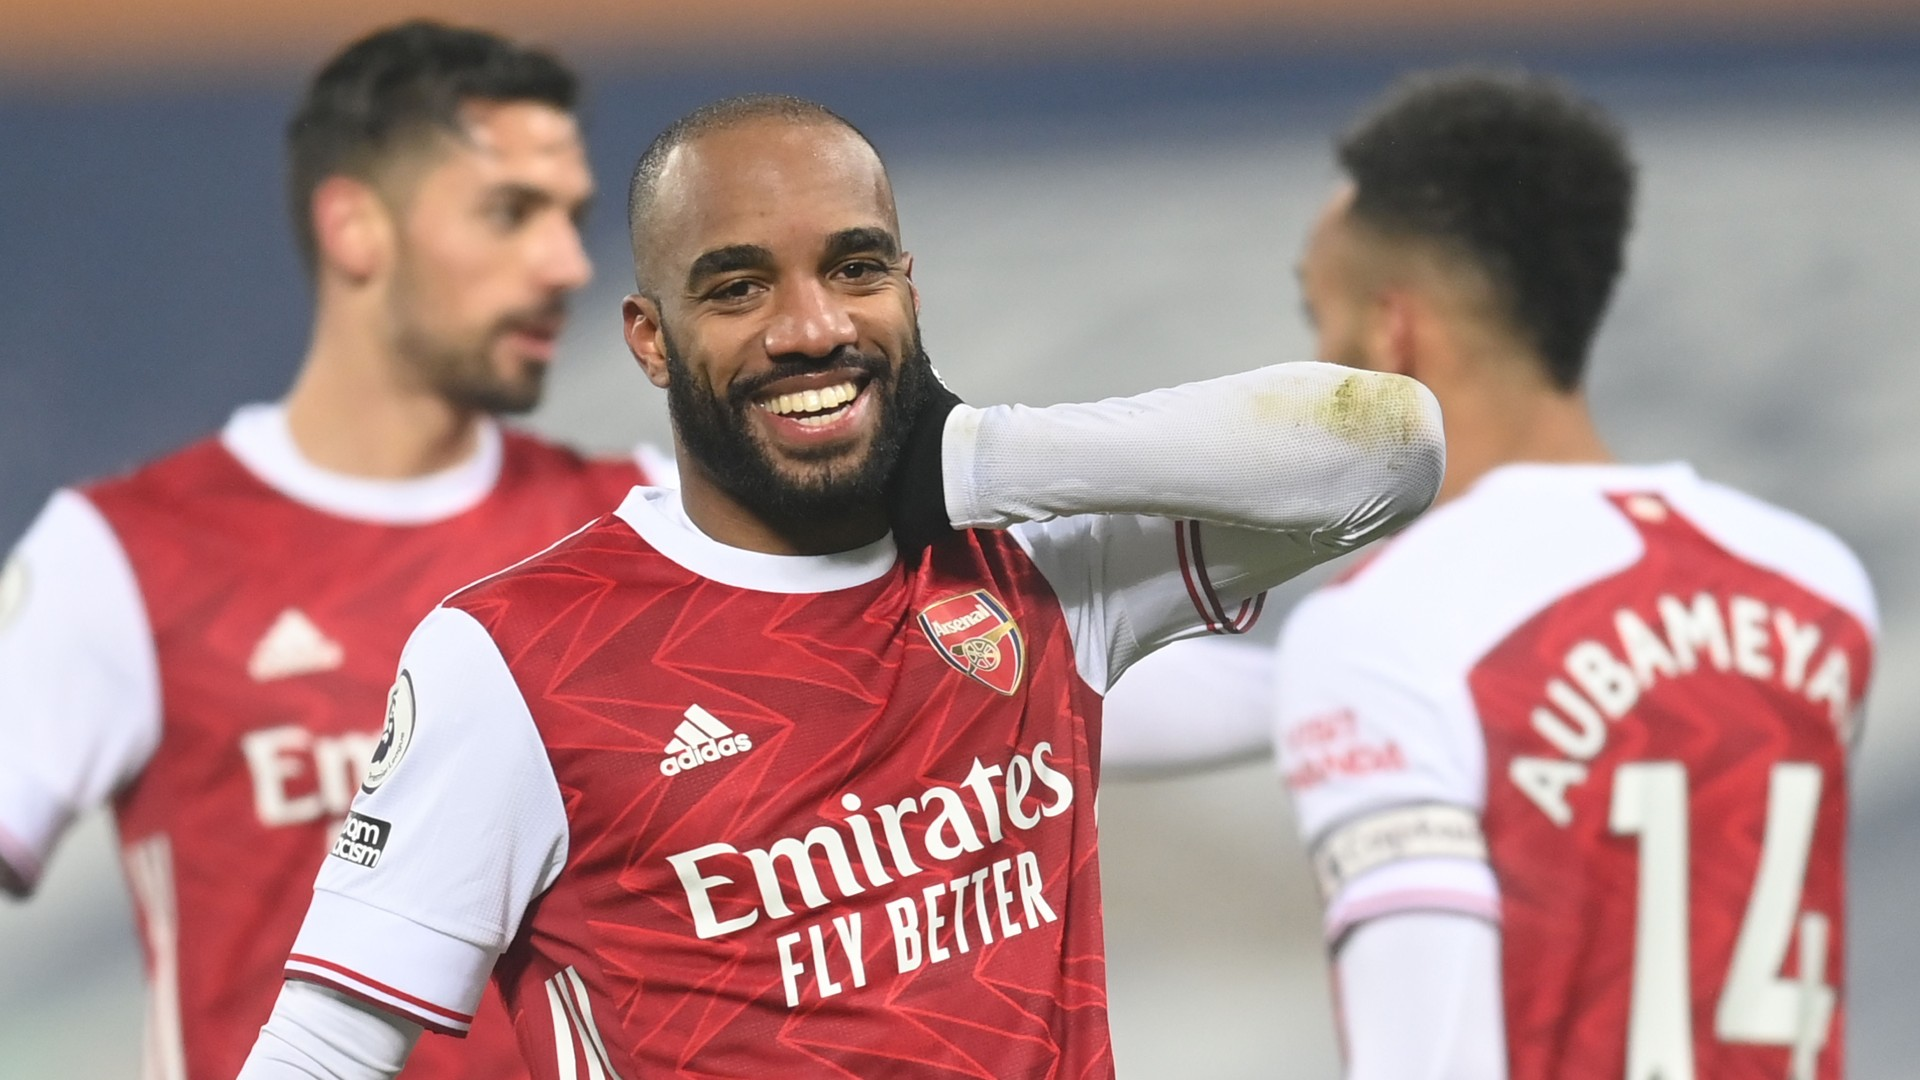 'We have not talked' - Lacazette's Arsenal future to be decided in the summer, says Arteta